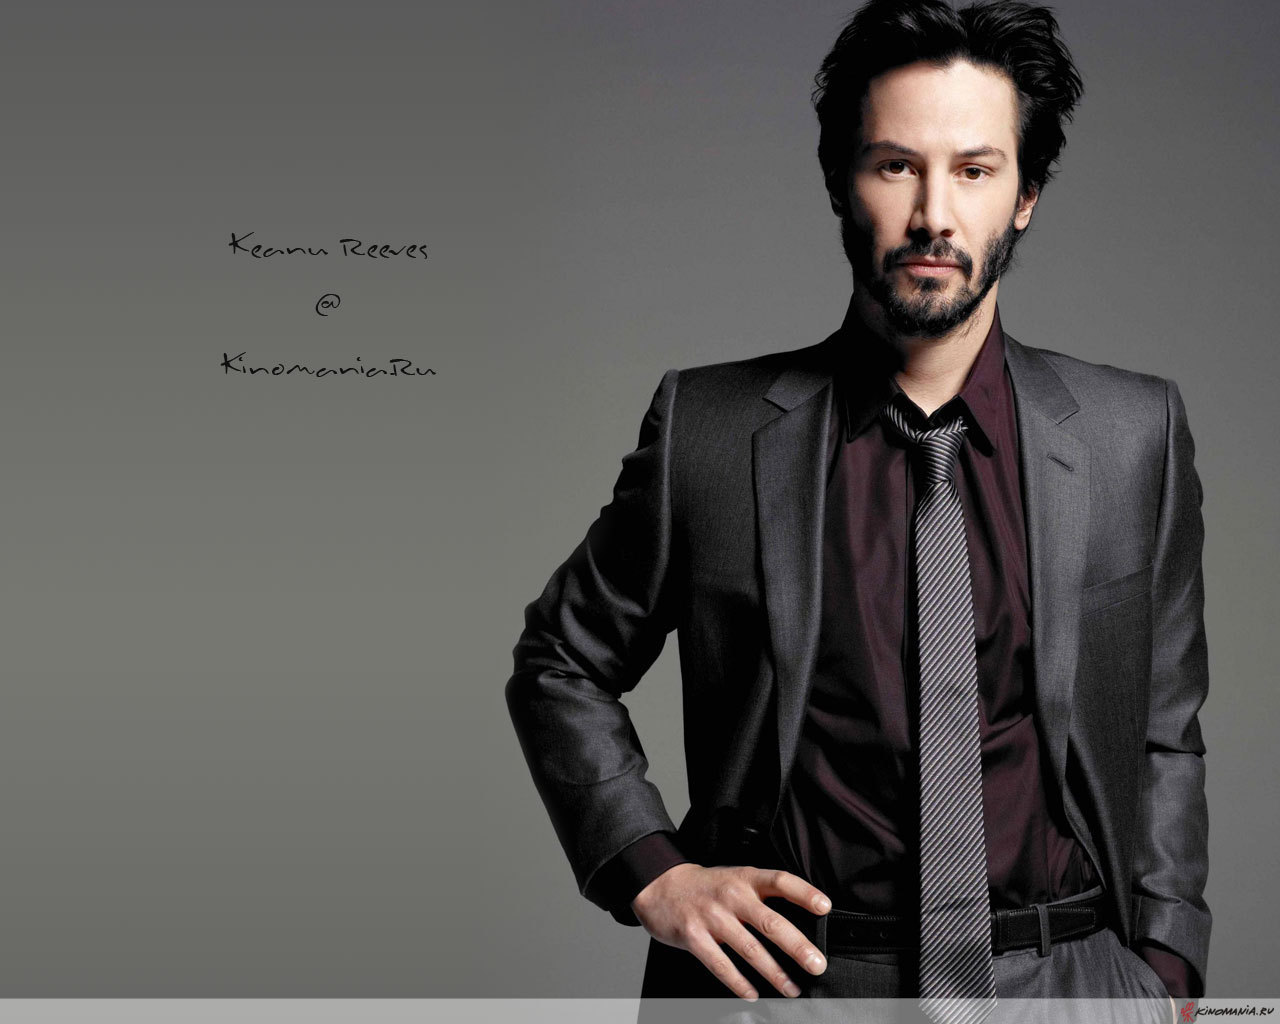 Keanu reeves ode to happiness